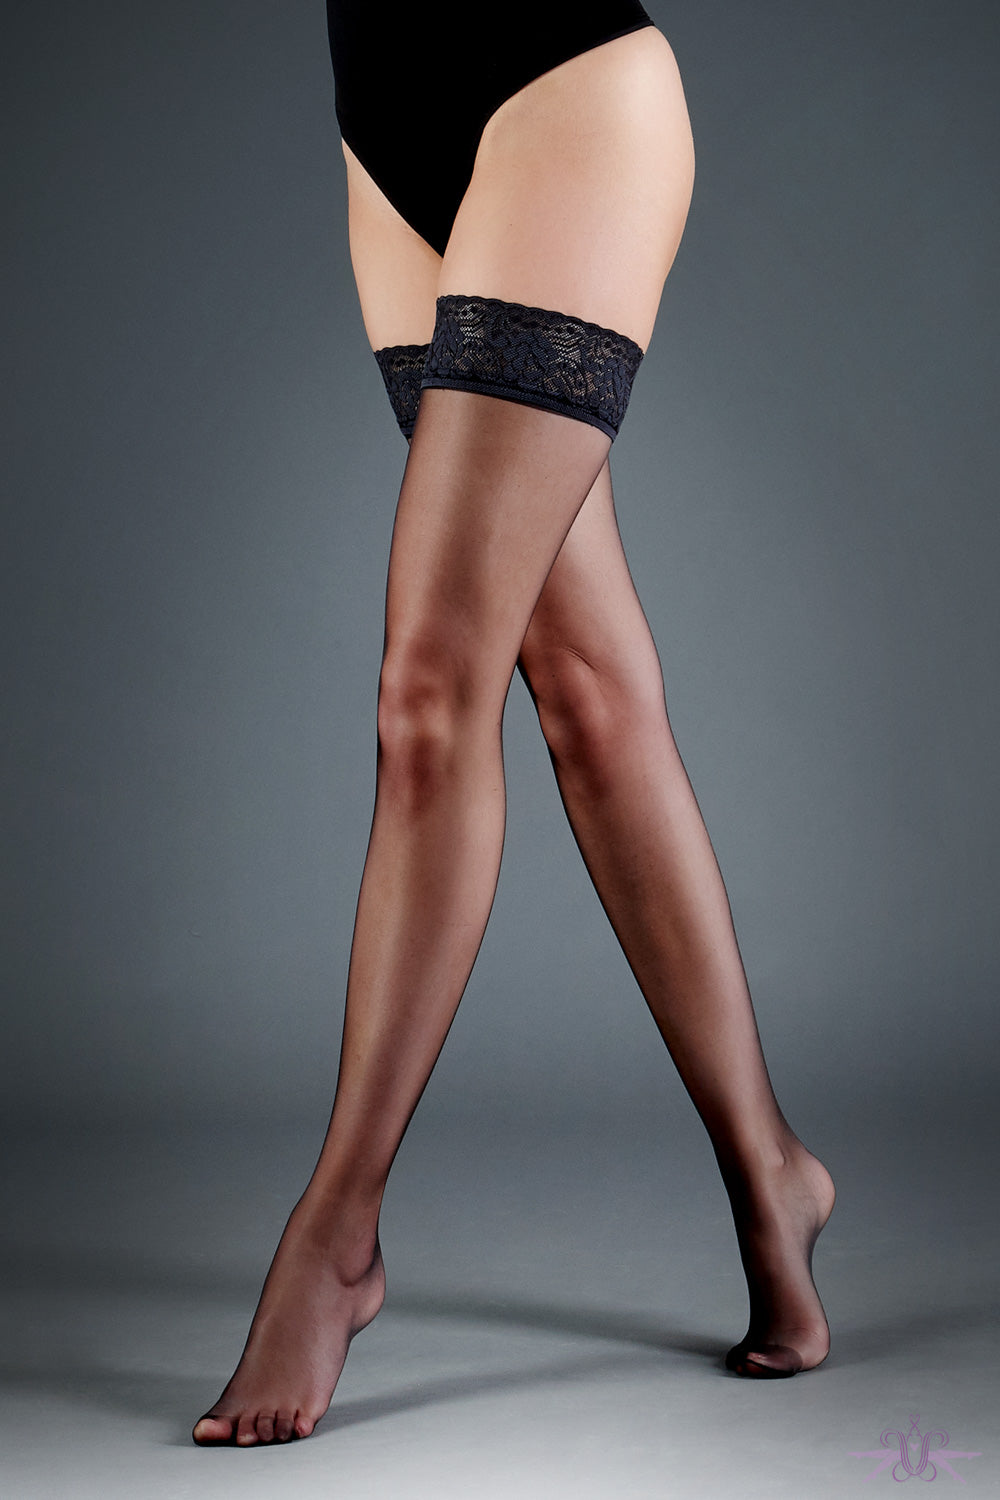 Bluebella Black Lace Top Hold Ups - Mayfair Stockings